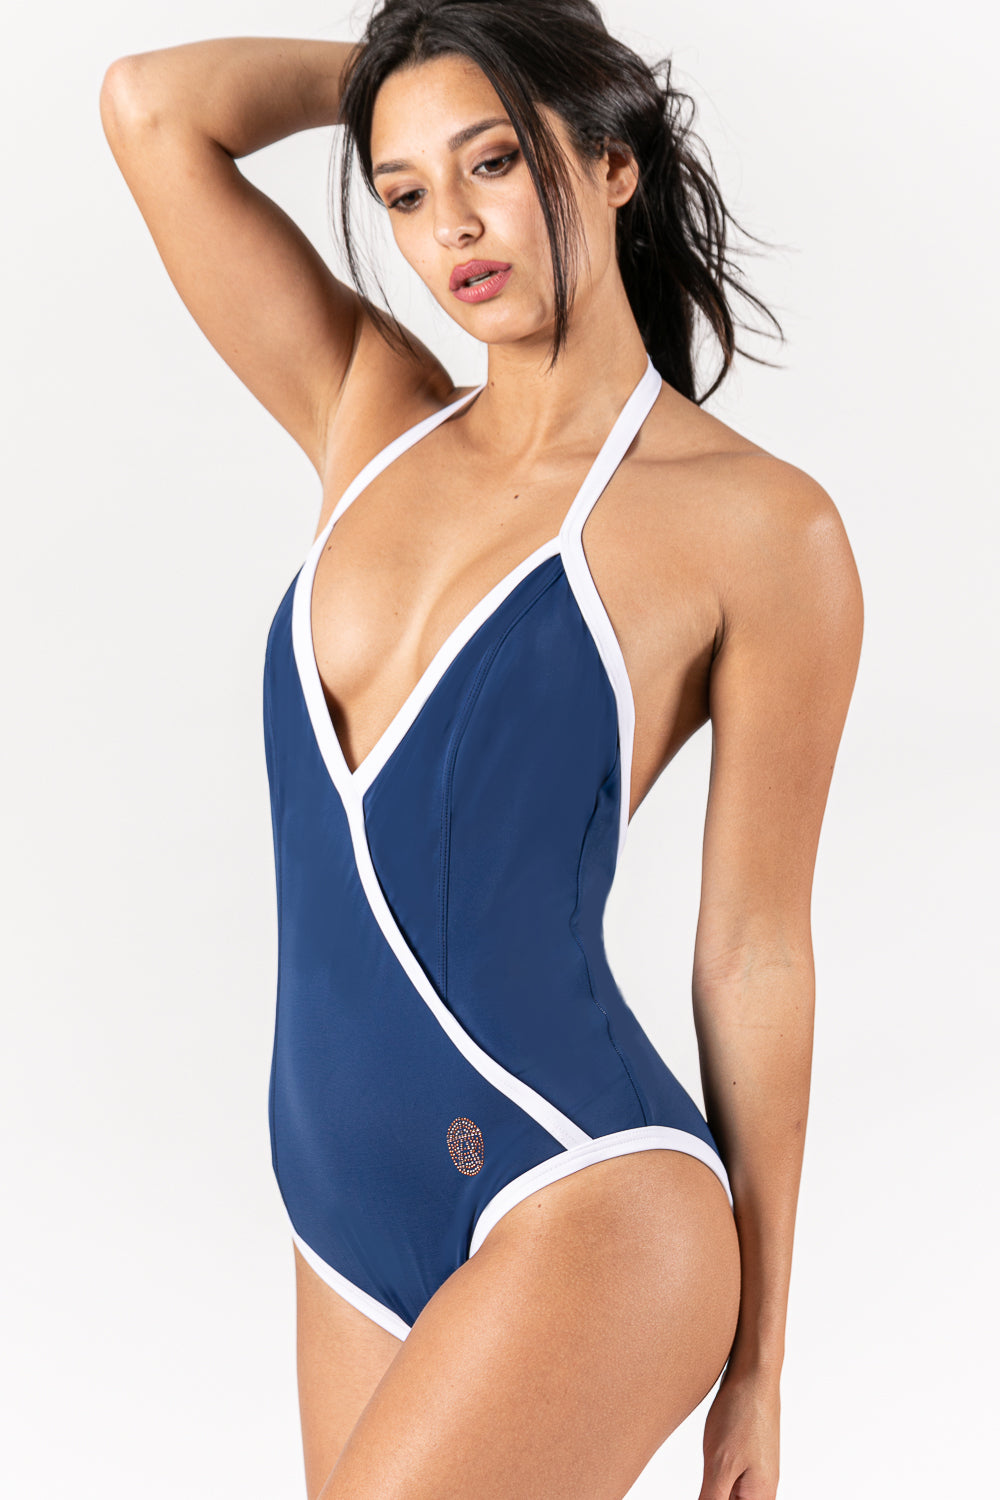 Women swimsuit in color blue marine with white trimmings.  Sustainable Swimwear made from recycled plastics and bottles by BRISSUS